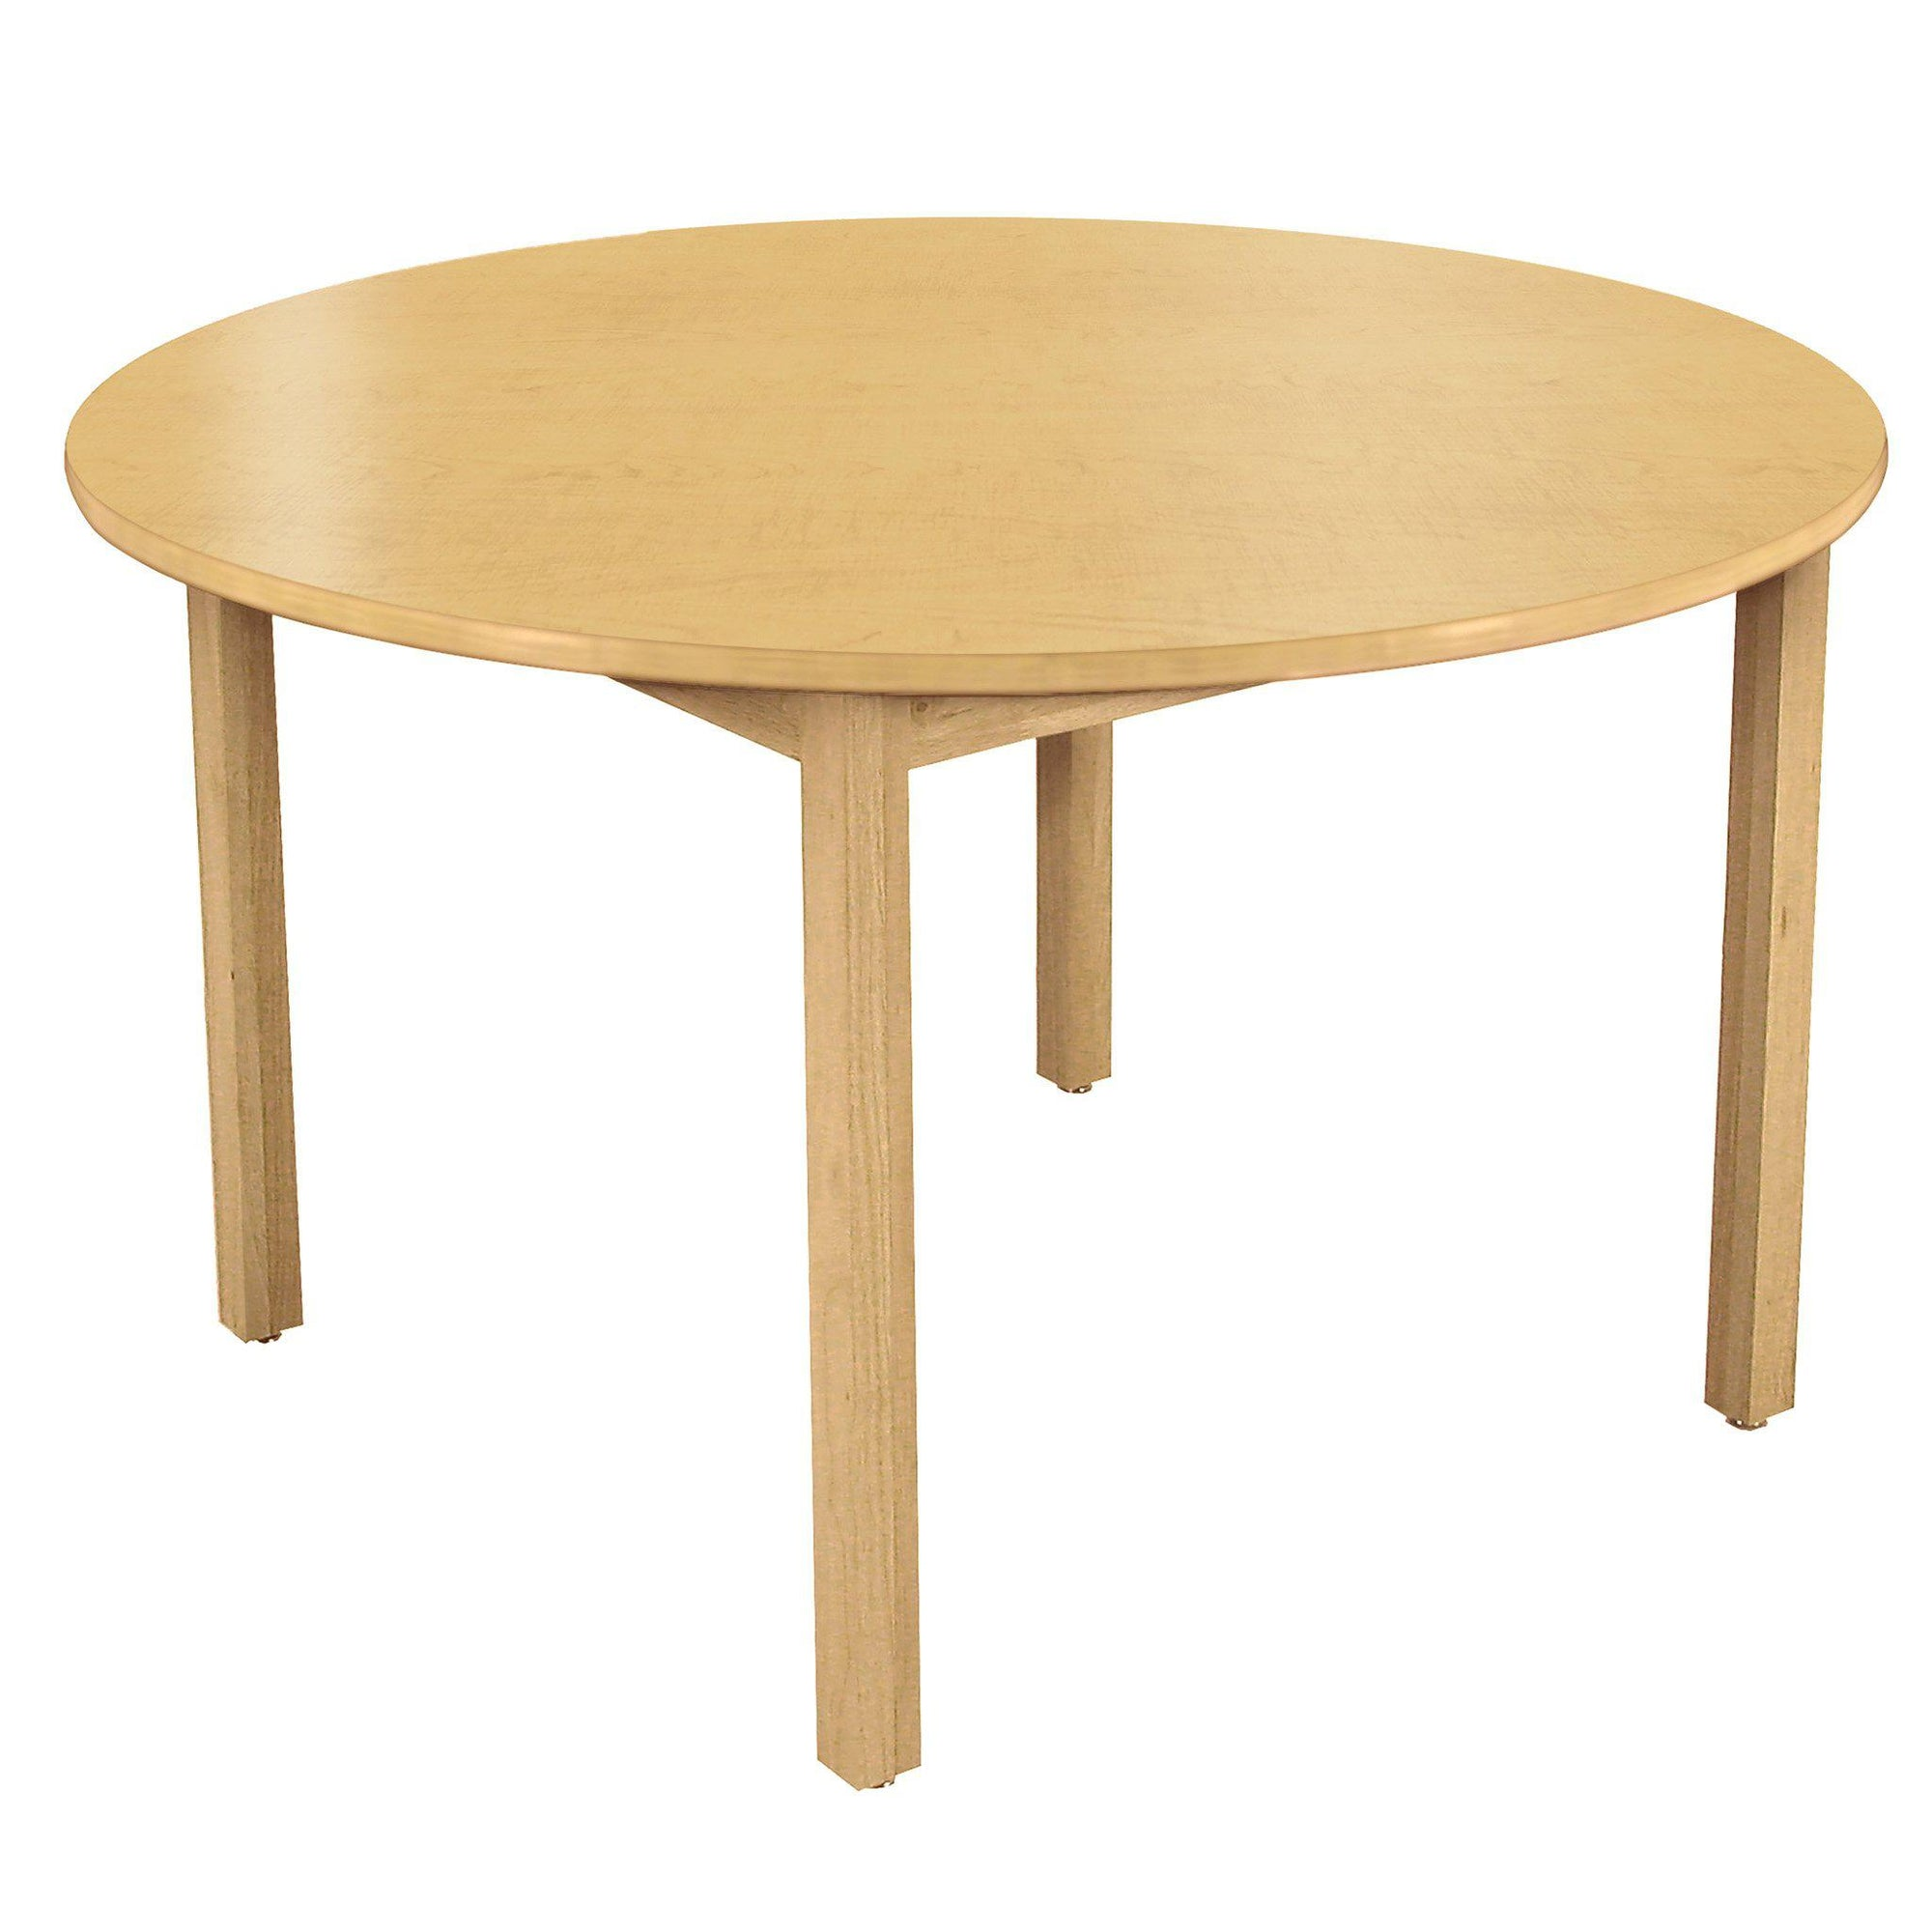 "LB Series Round Wood Library Table with High-Pressure Laminate Top, 42"" Round"